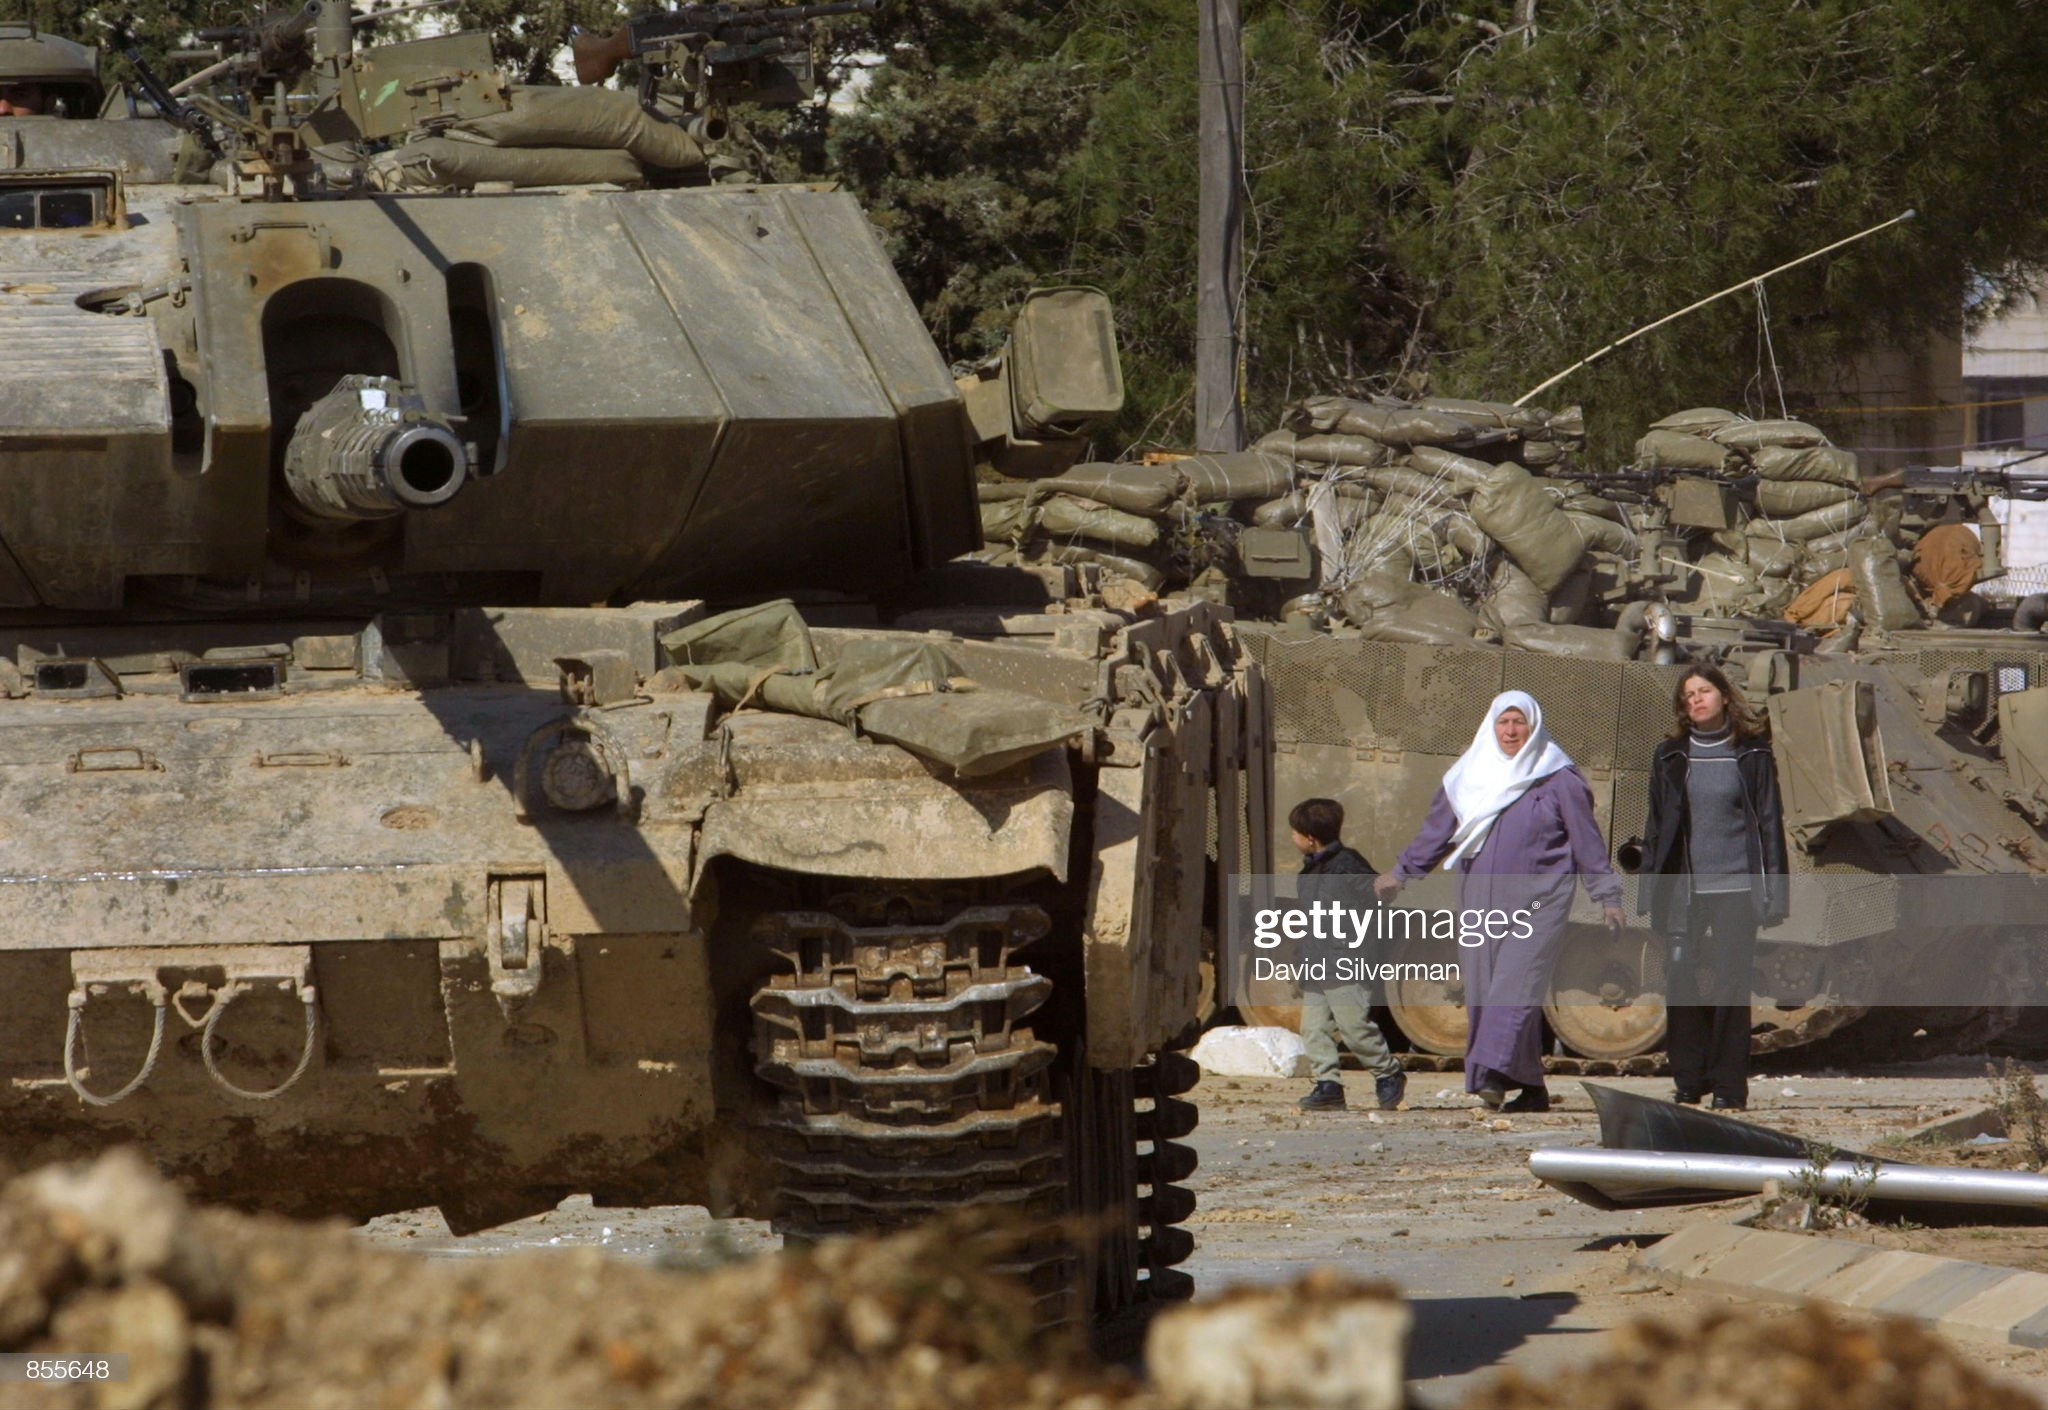 https://media.gettyimages.com/photos/palestinians-walk-between-israeli-tanks-positioned-opposite-leader-picture-id855648?s=2048x2048